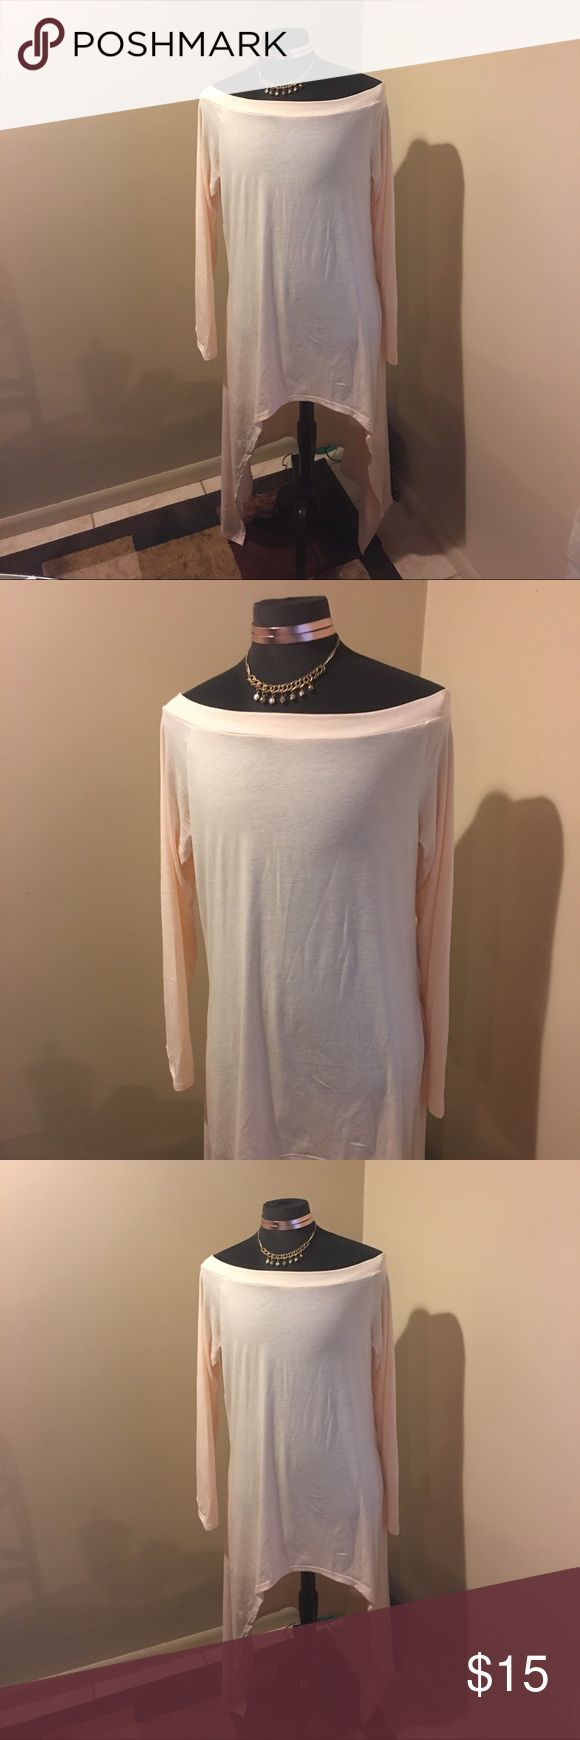 Sexy! Fashion Trend! Off The Shoulder, Maxi Shirt Sexy, off white, off The Shoulder, Maxi shirt with Shark bite sides Tops